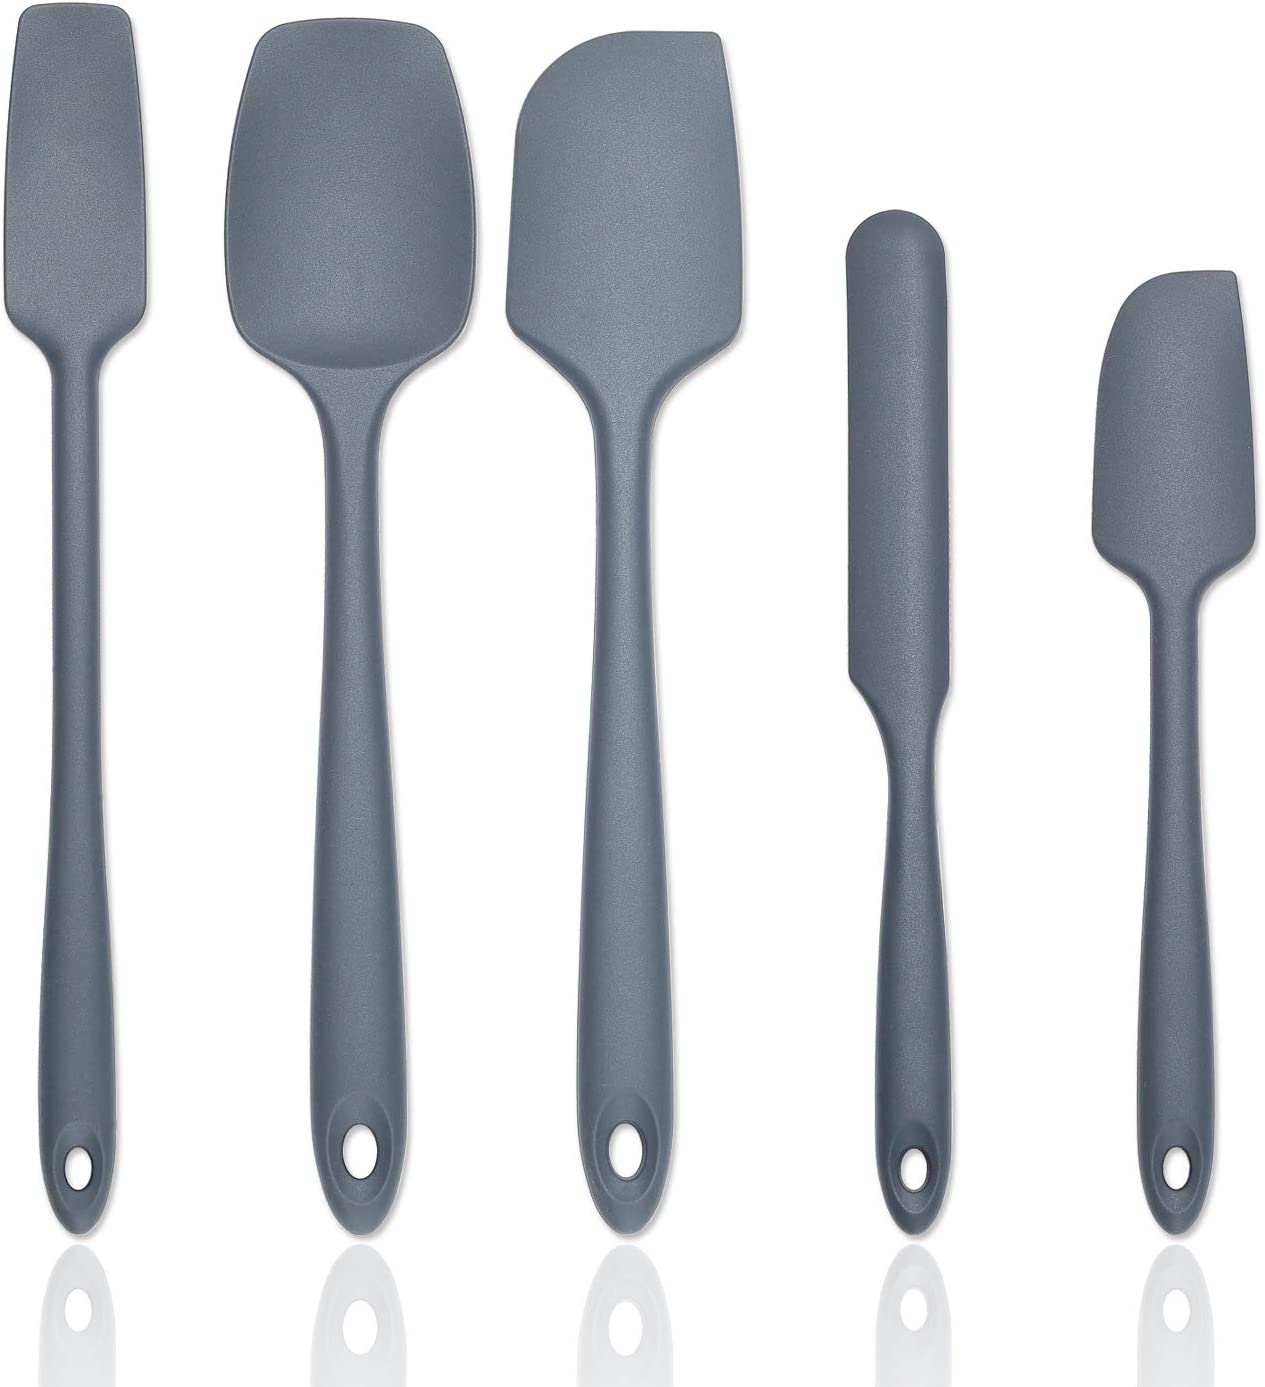 Silicone Spatula Set (Set Of 5) - Kitchen Spatulas Silicone Heat Resistant Rubber Spatula Set With Strong Stainless Steel Core Inside And Food Grade Silicone For Cooking, Baking, And Mixing